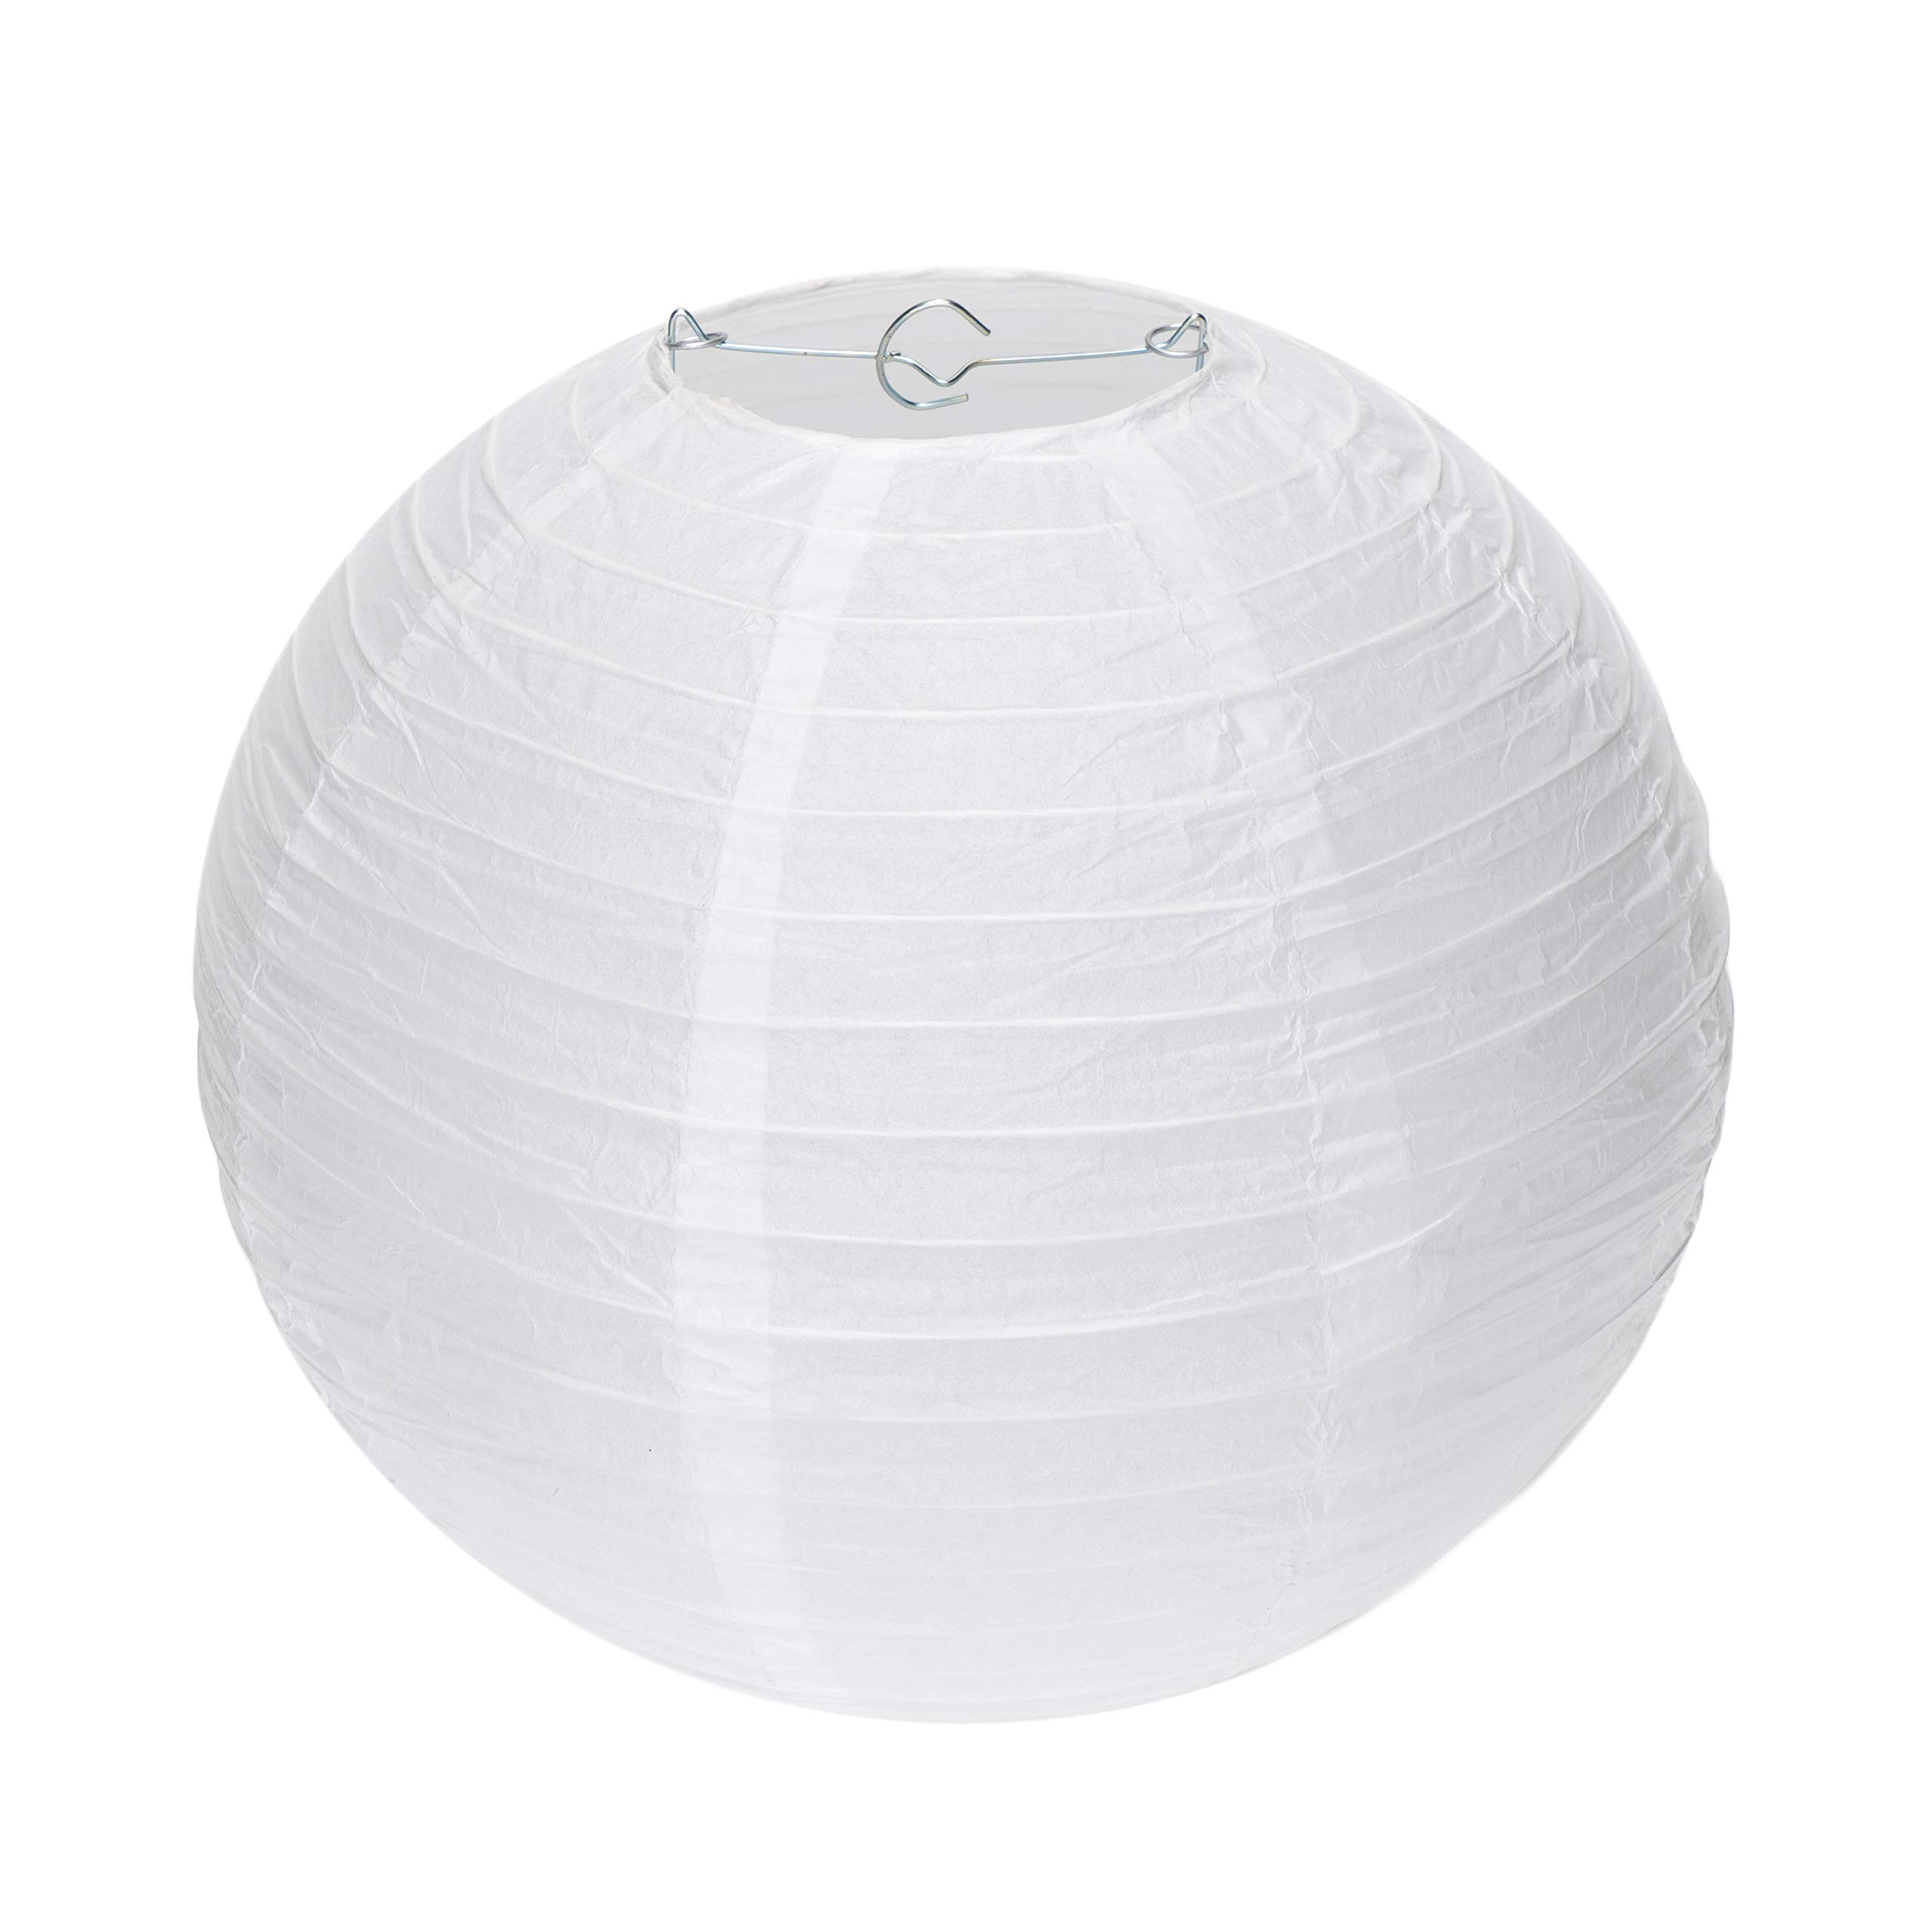 Special Feelings 25 Pack White Paper Lanterns Set (Assorted Sizes of 6, 8, 10, 12 Inch) for Weddings Birthday Parties, Baby Showers, Classroom Decoration and More and More, by Special Feelings (Image #8)